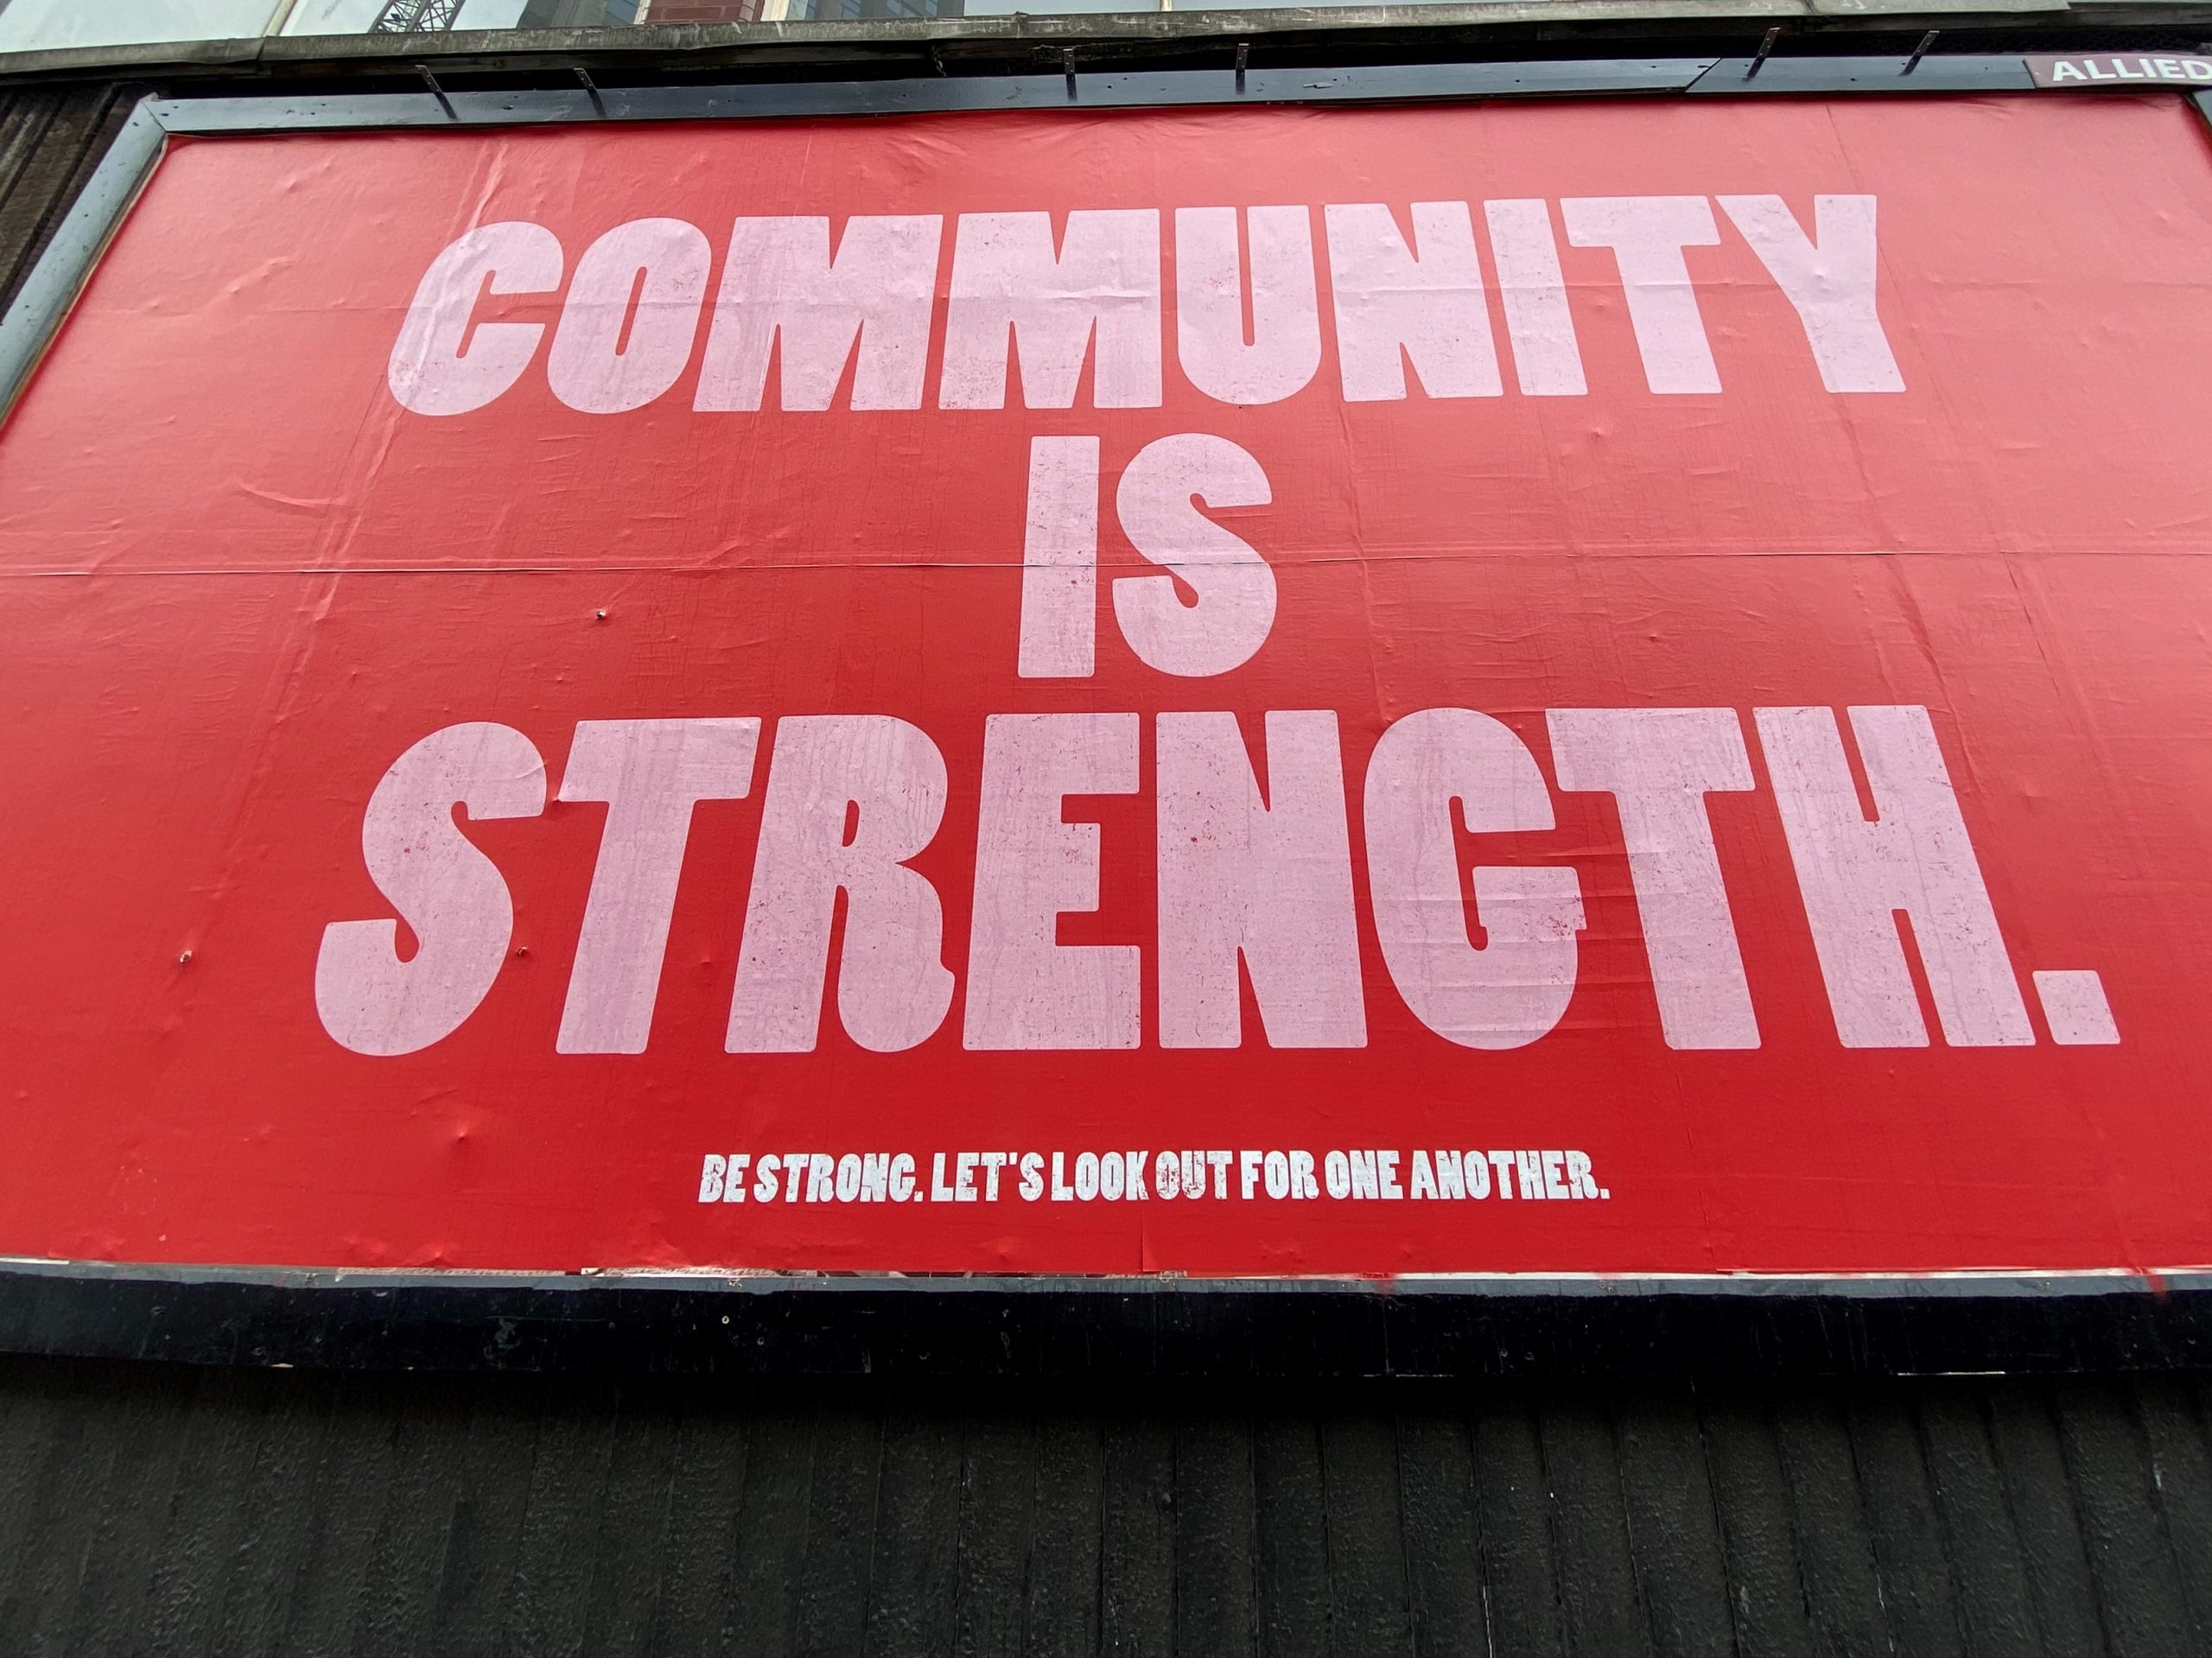 picture of billboard that says community is strength